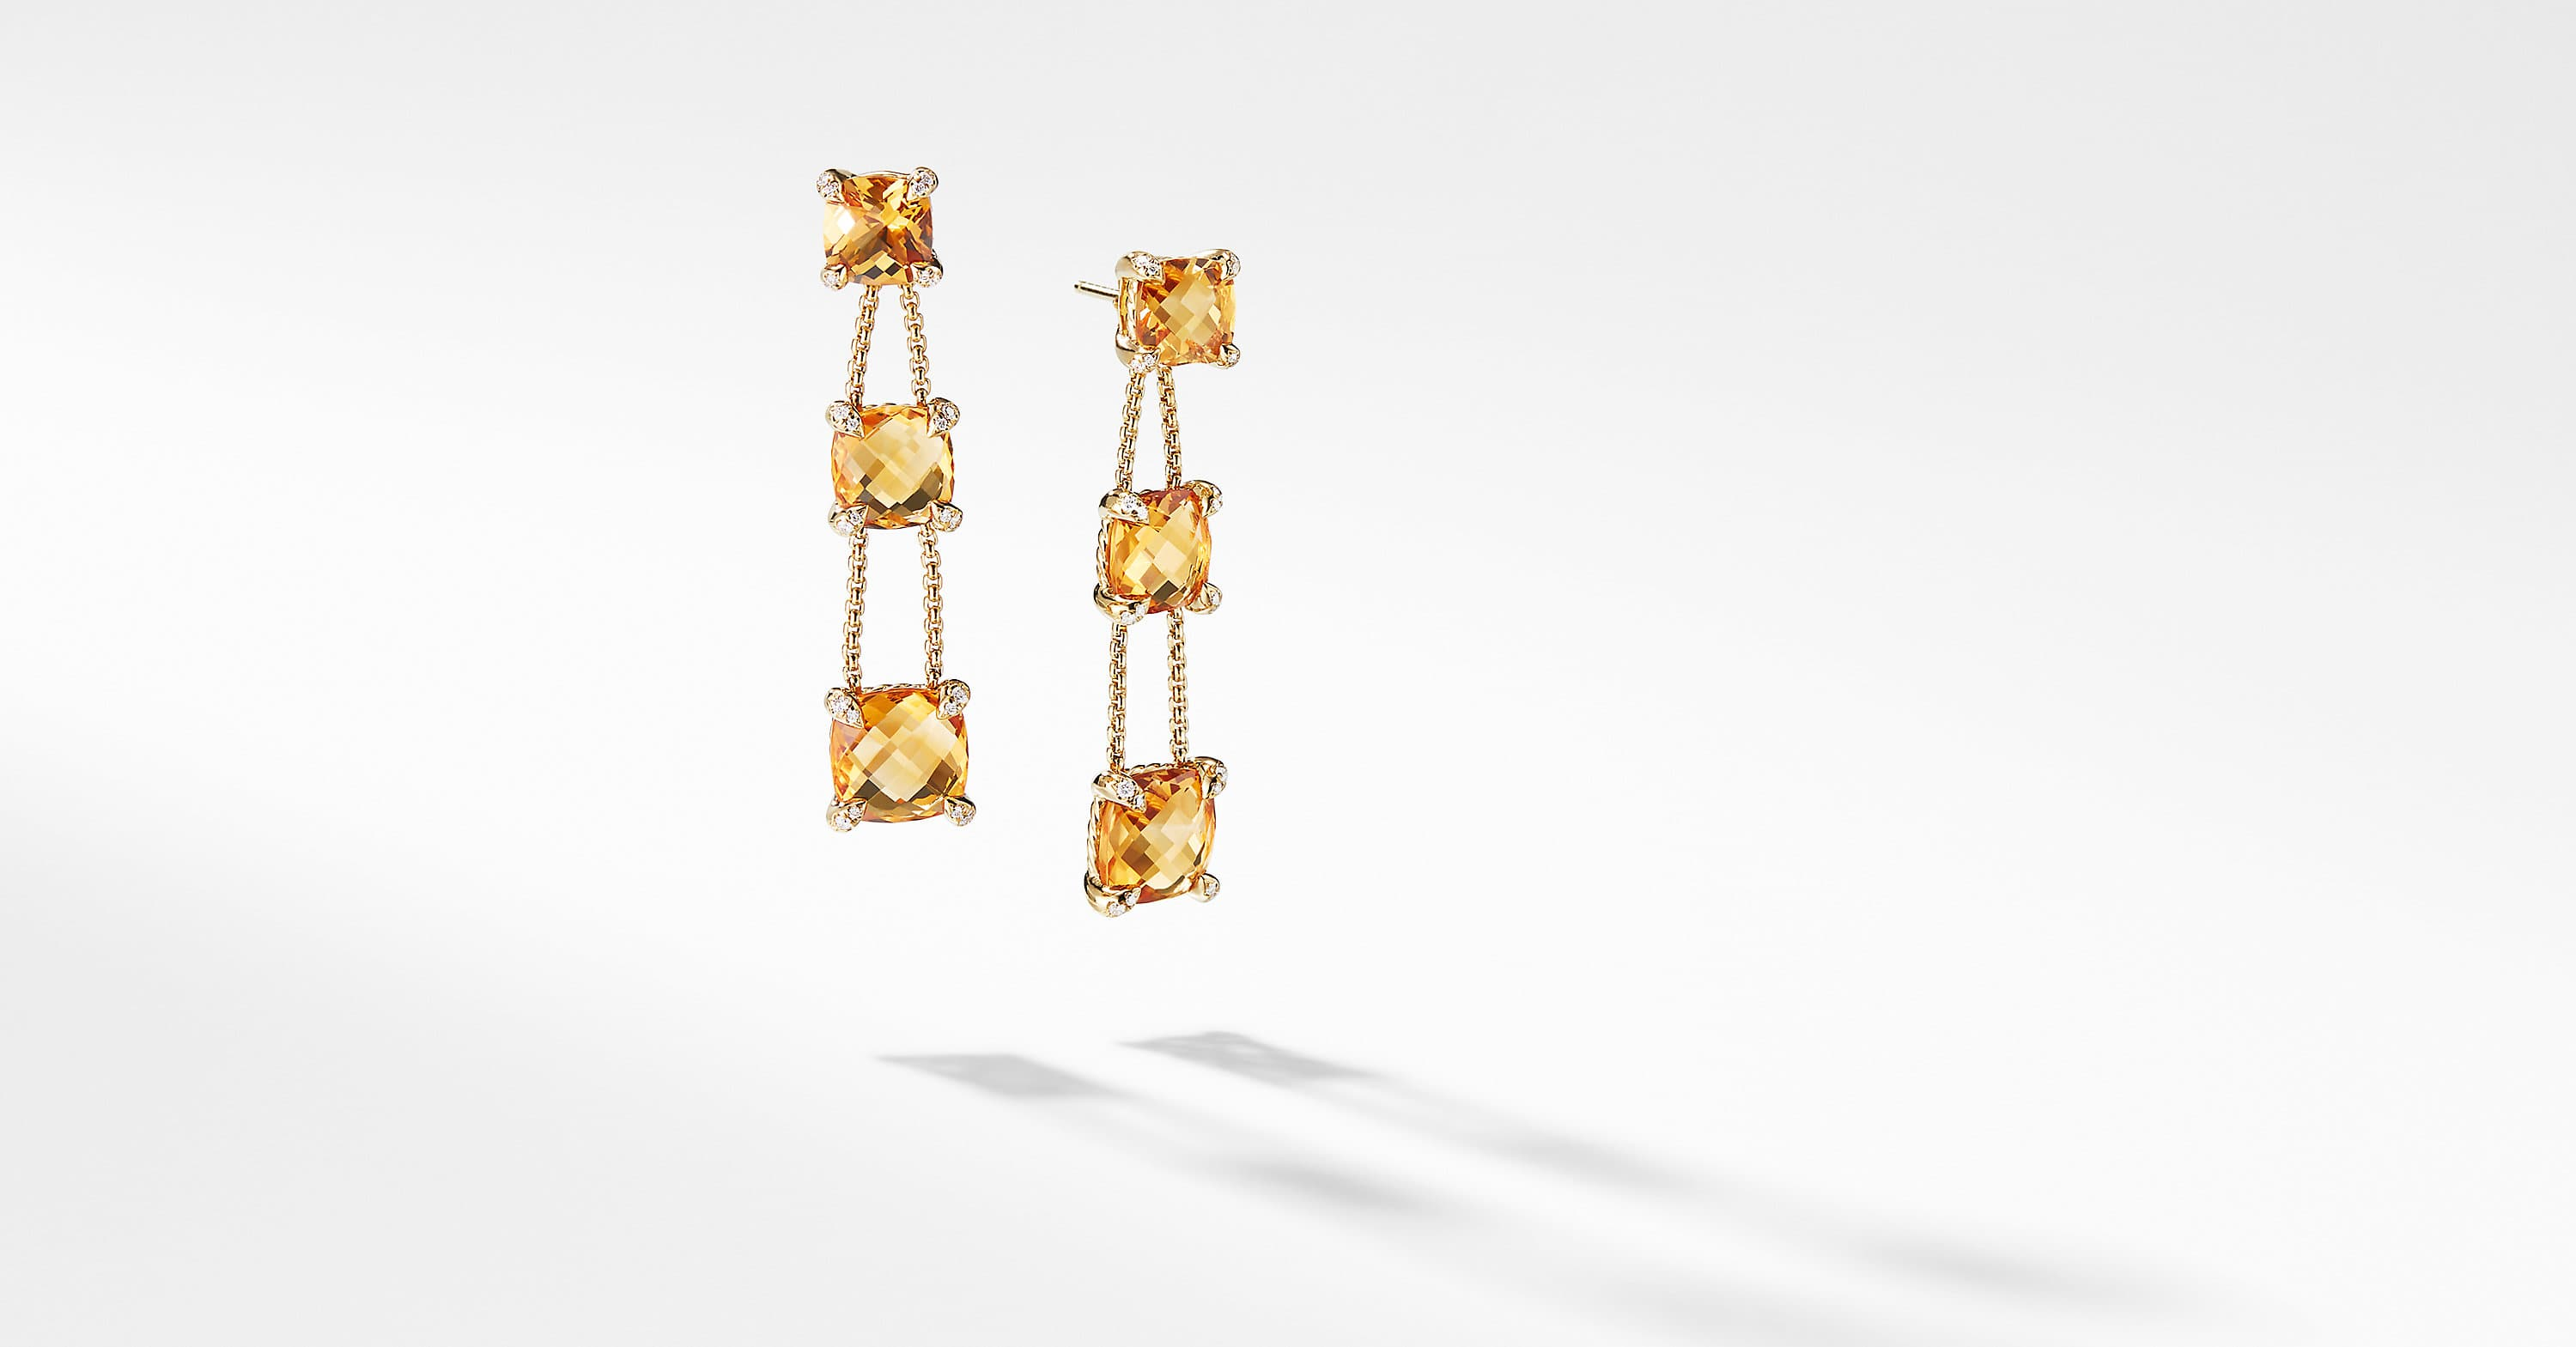 Chatelaine Linear Chain Earrings with Diamonds in 18K Gold